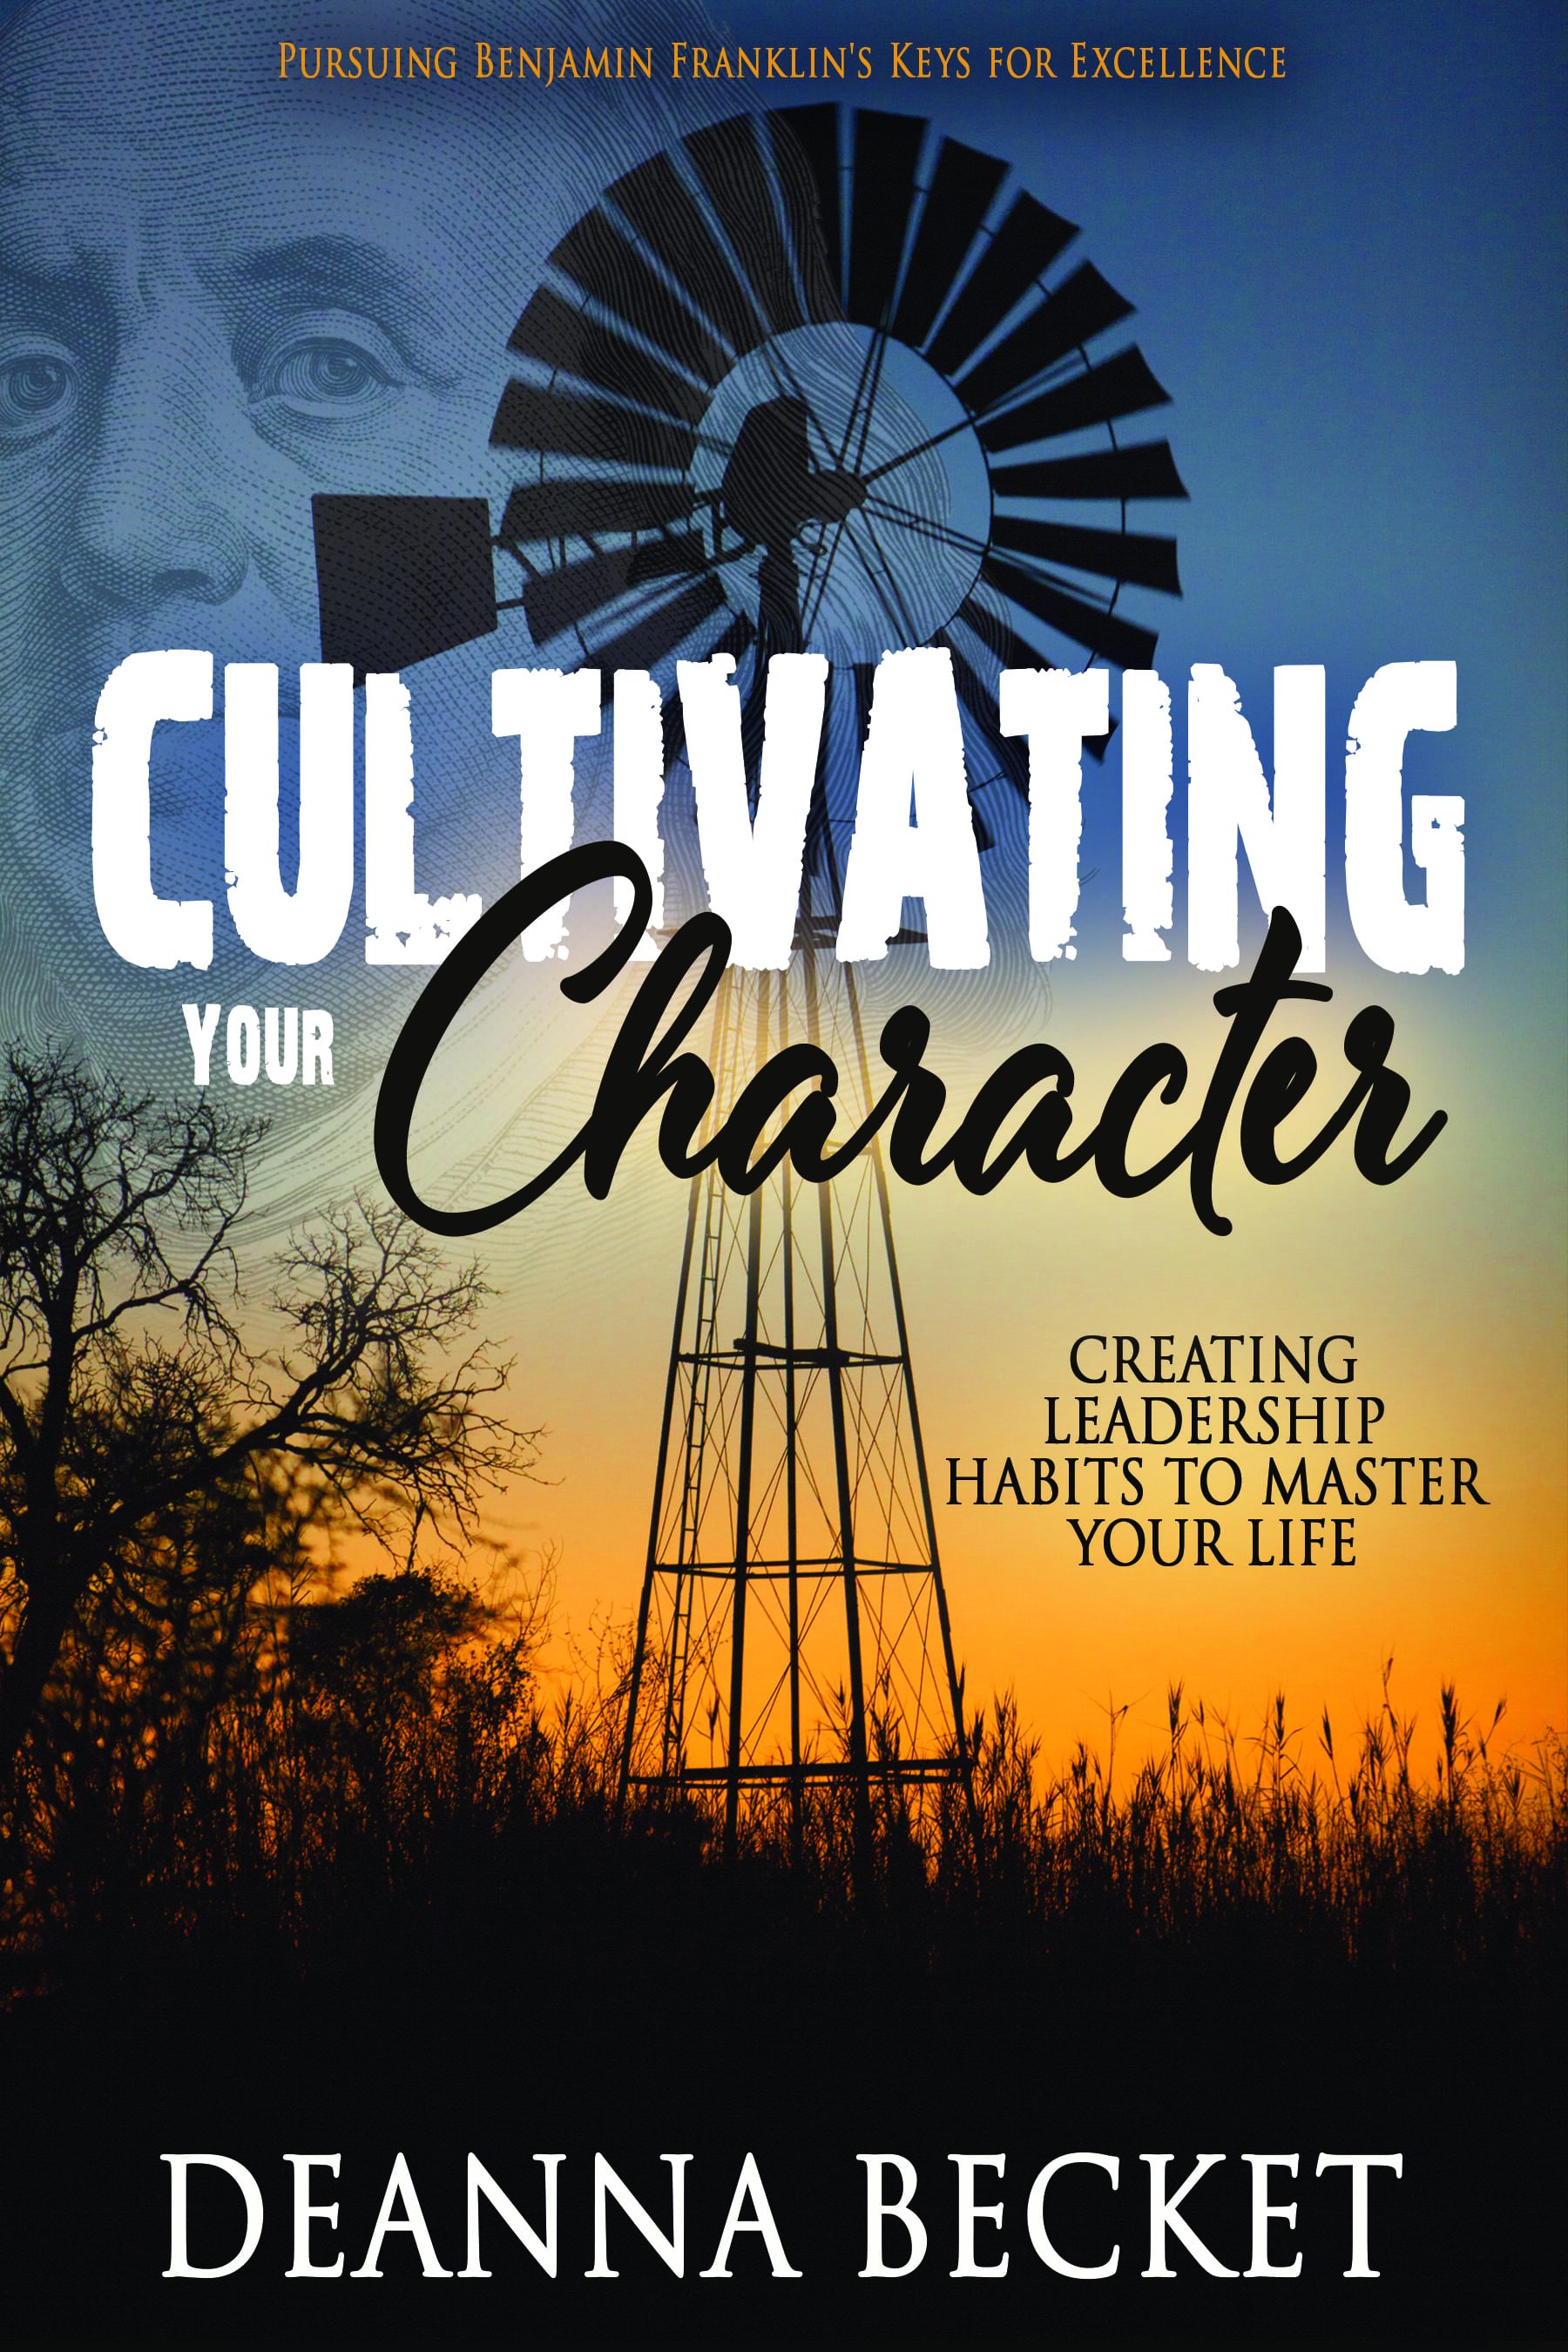 Cultivating Your Character